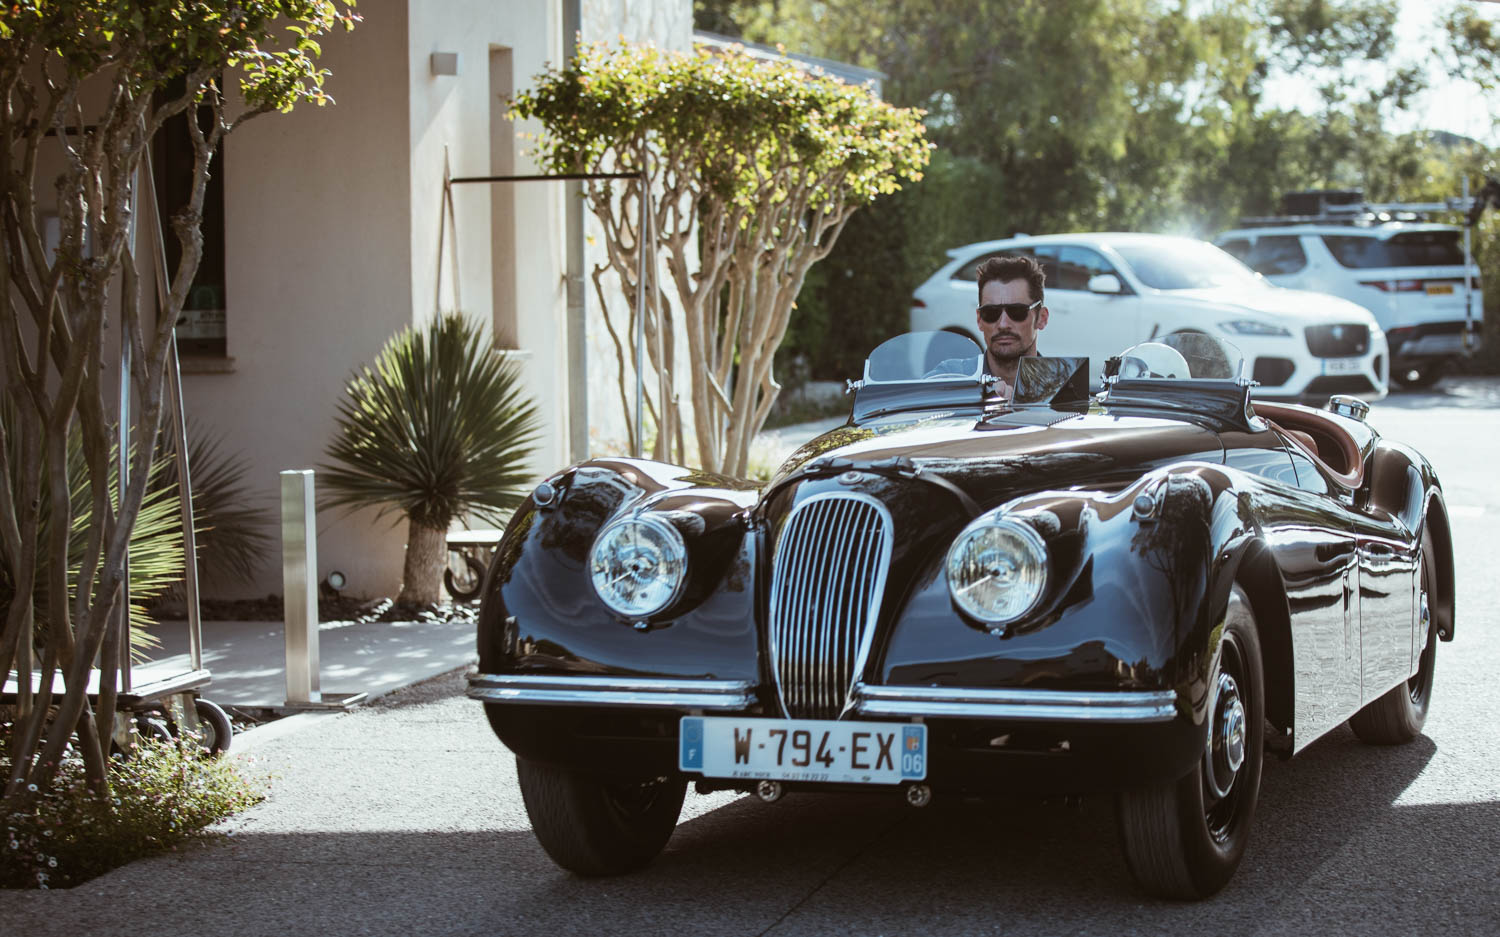 Jaguar XK120 drving